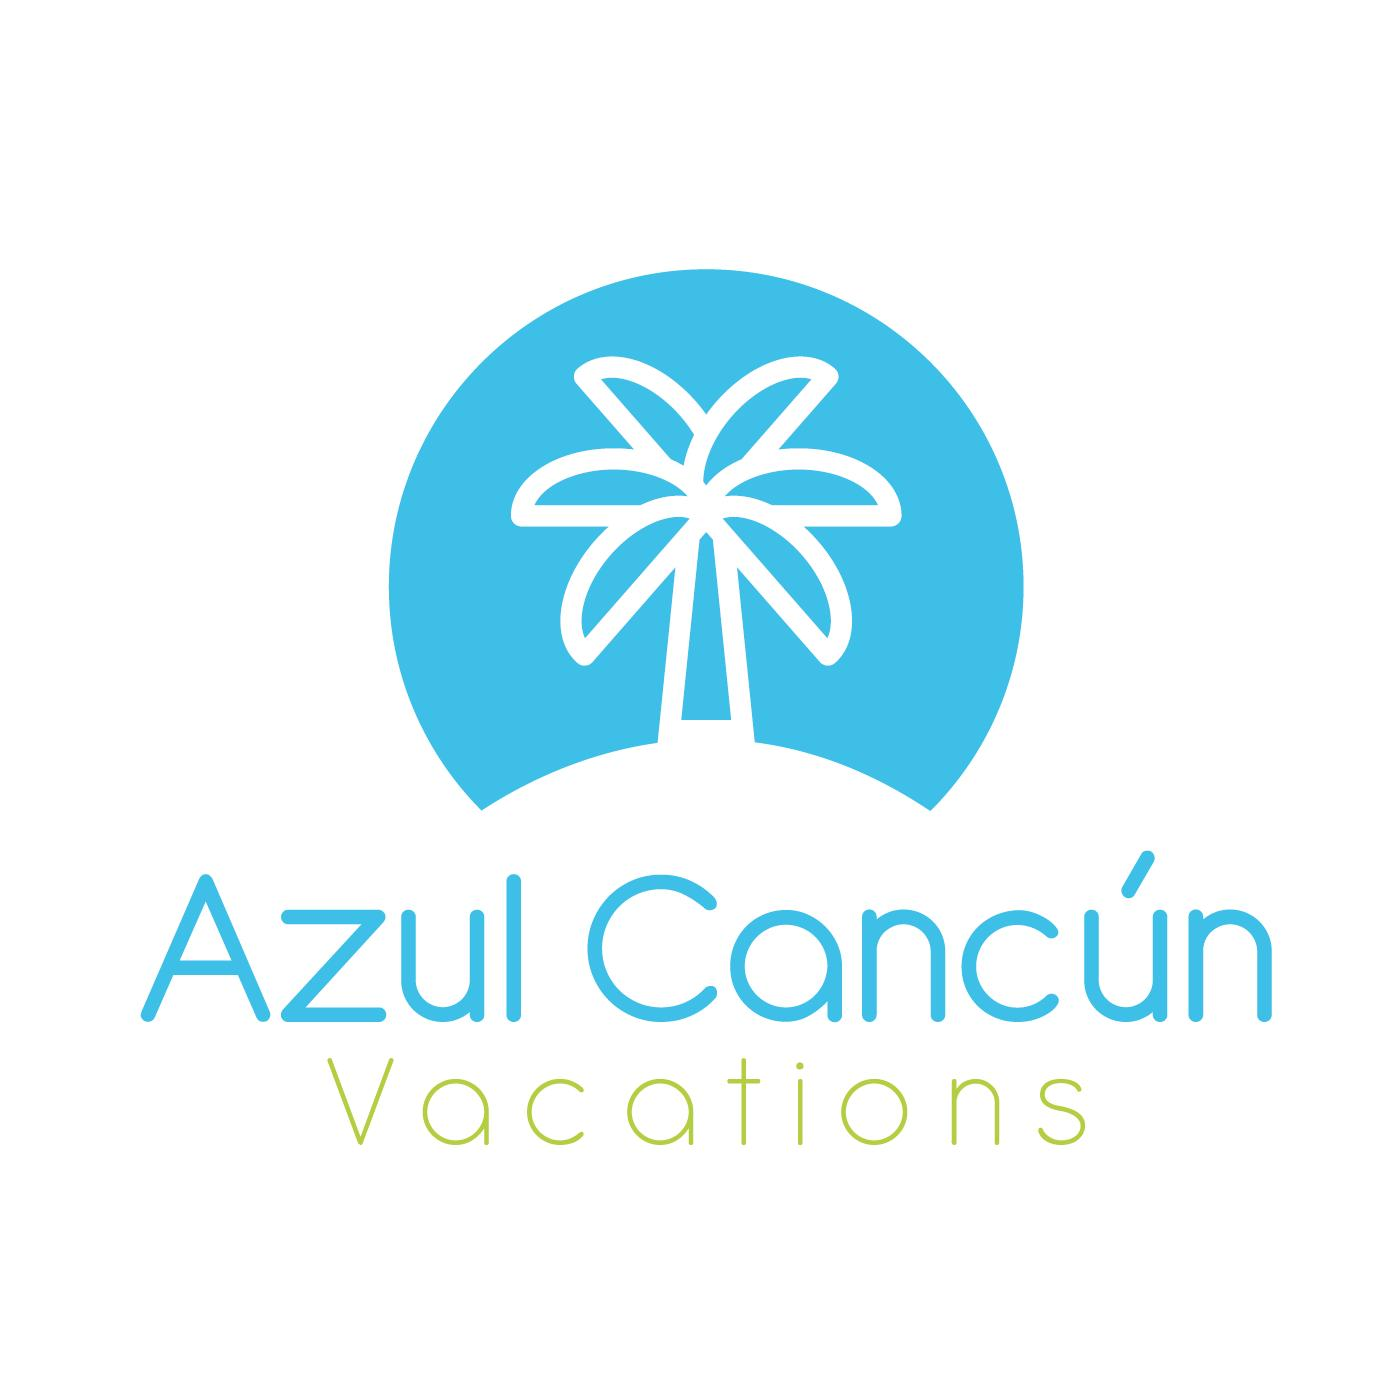 Azul Cancún Vacations